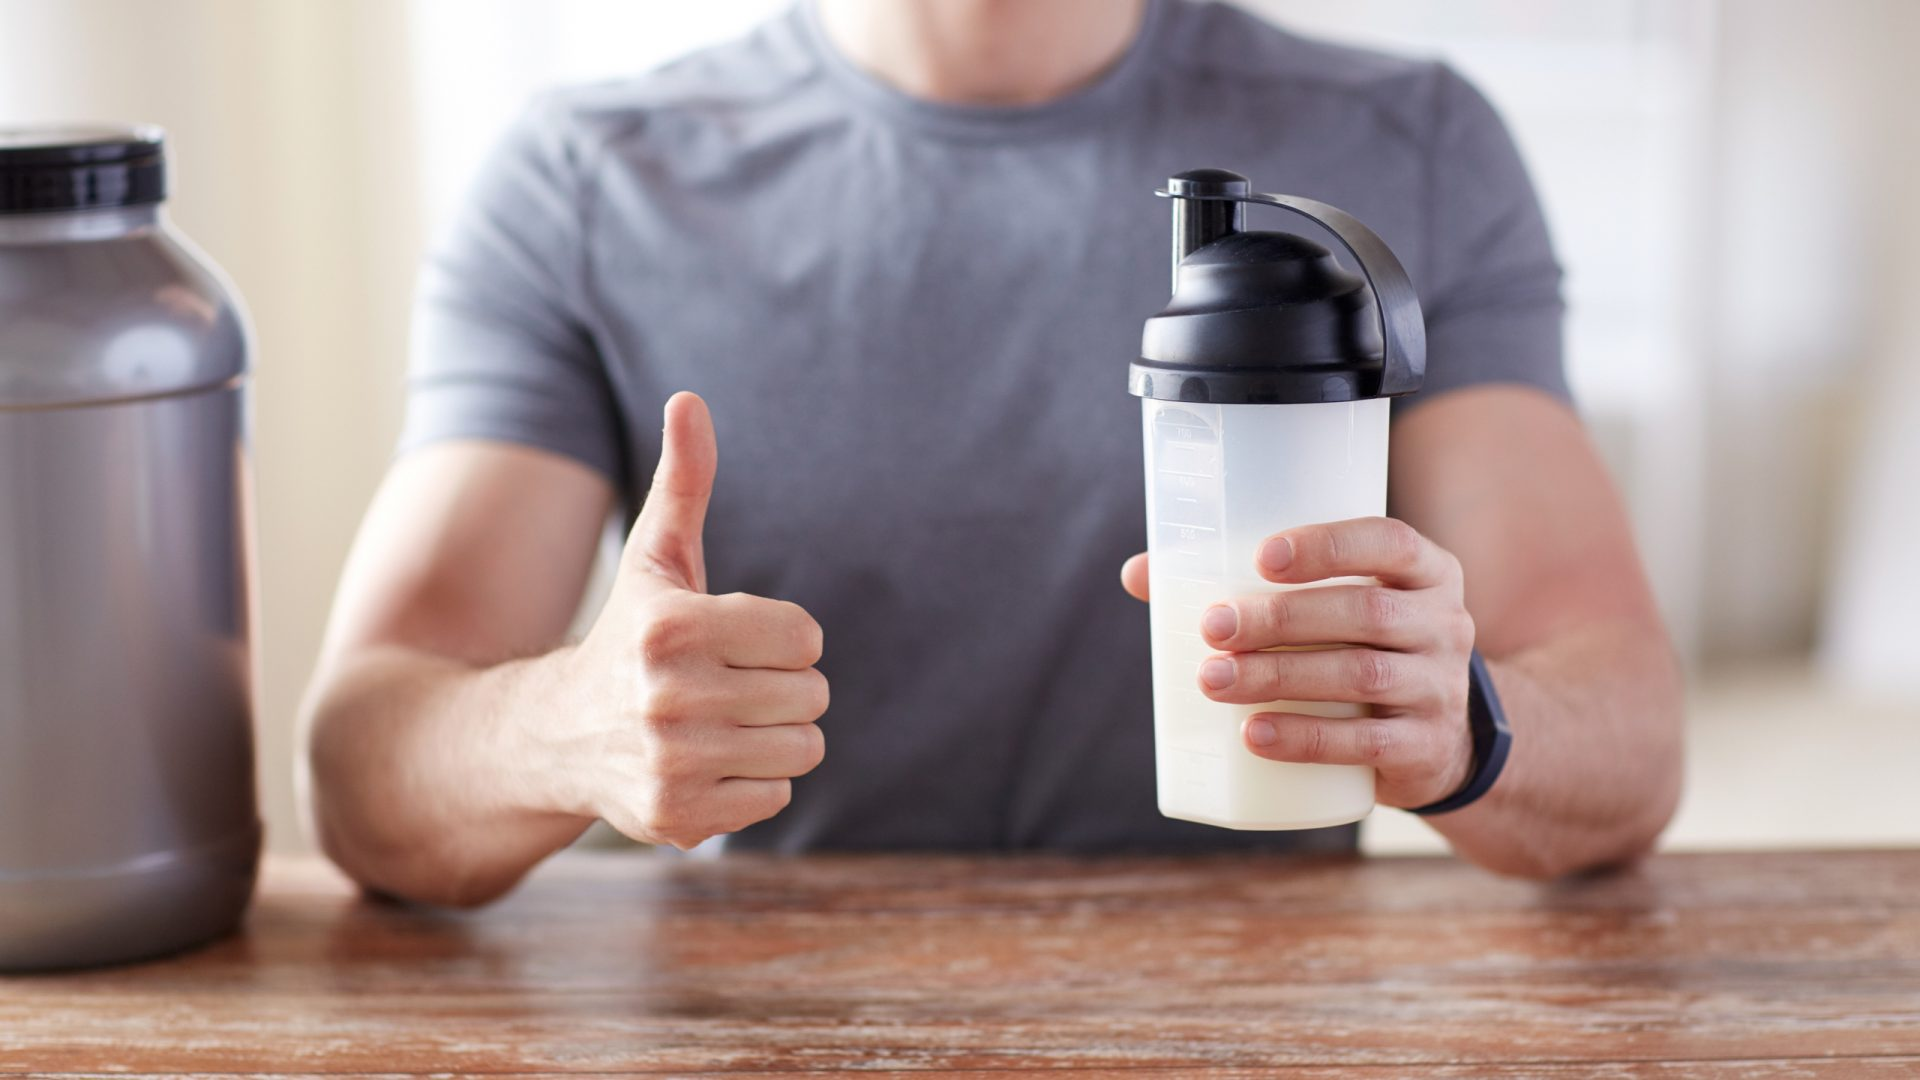 Supplements: How to minimise the risks